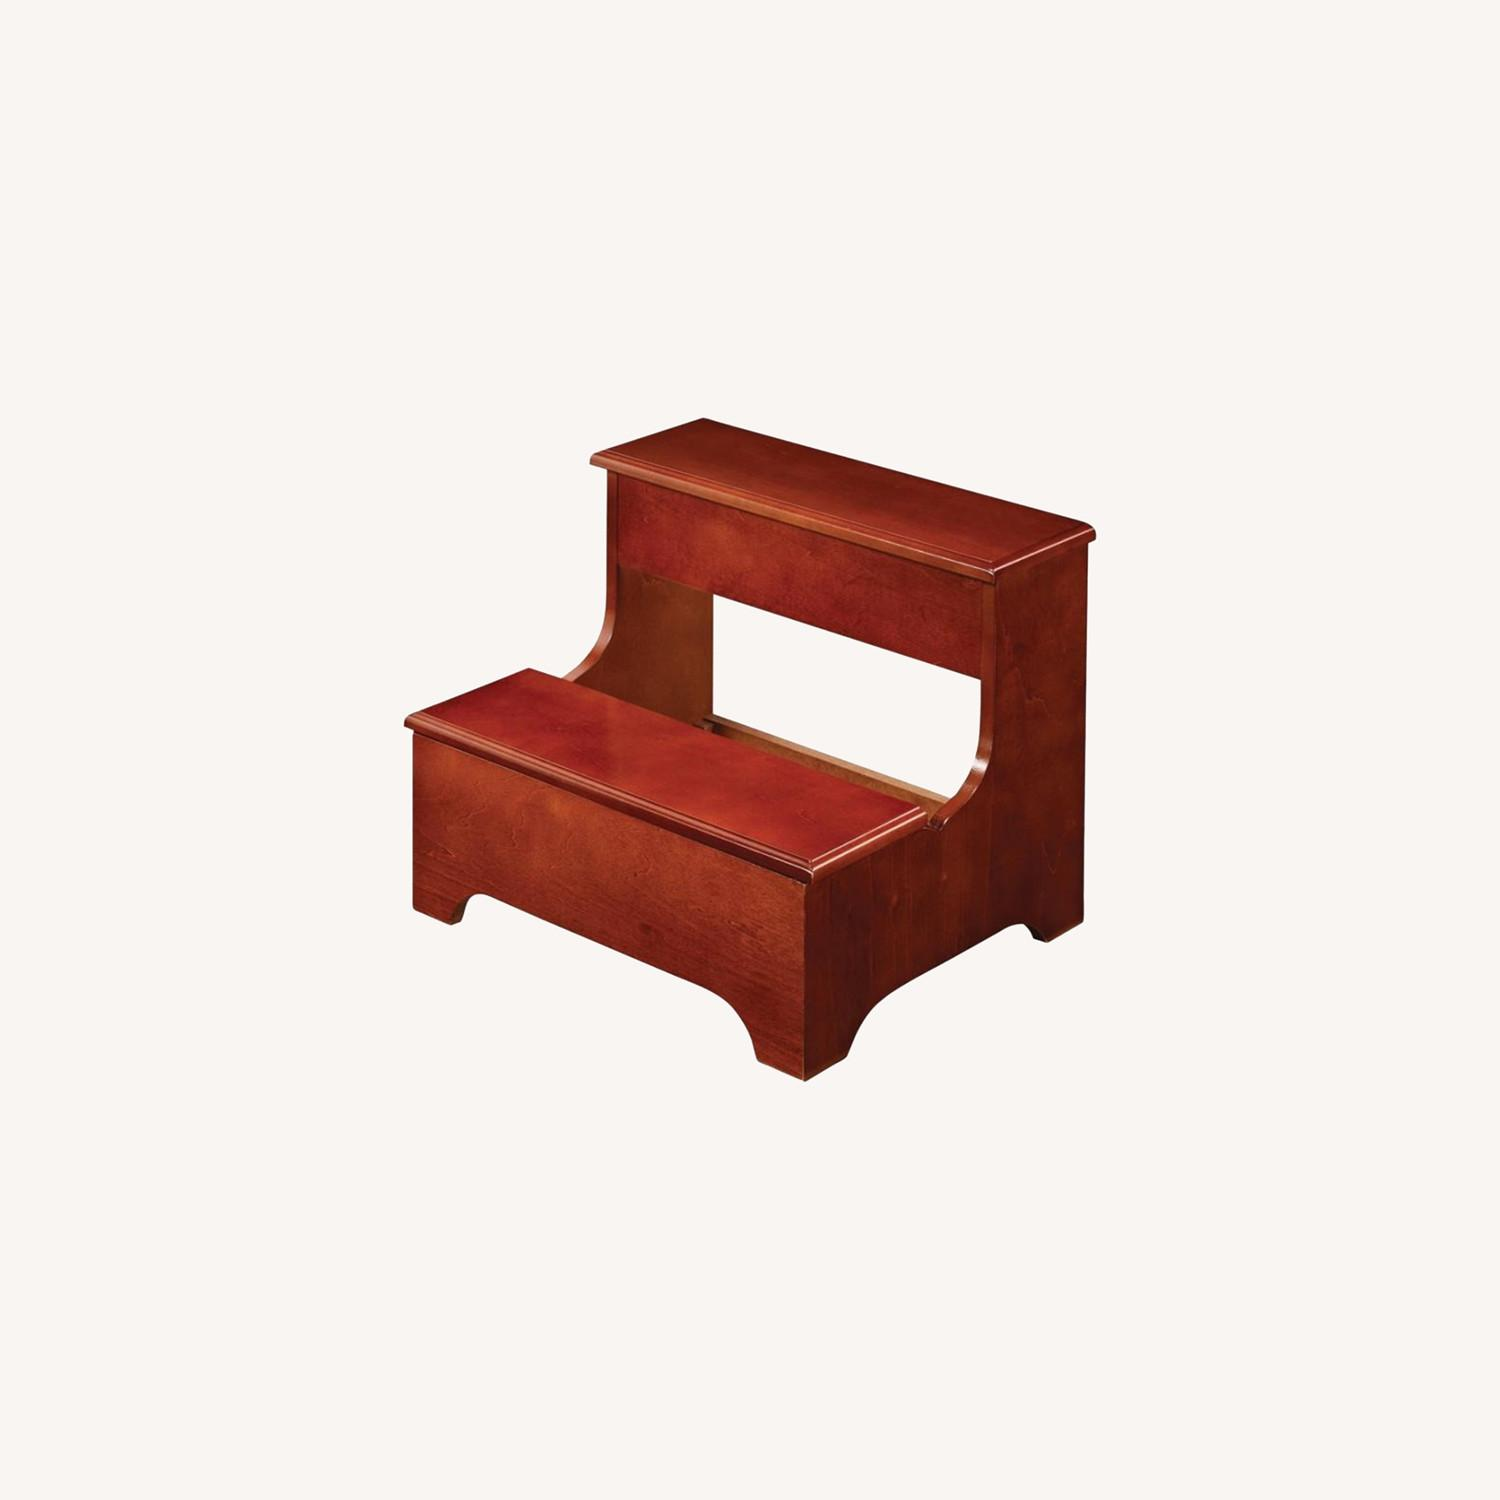 Stool In Rich Warm Brown W/ Two-Tier Step - image-3